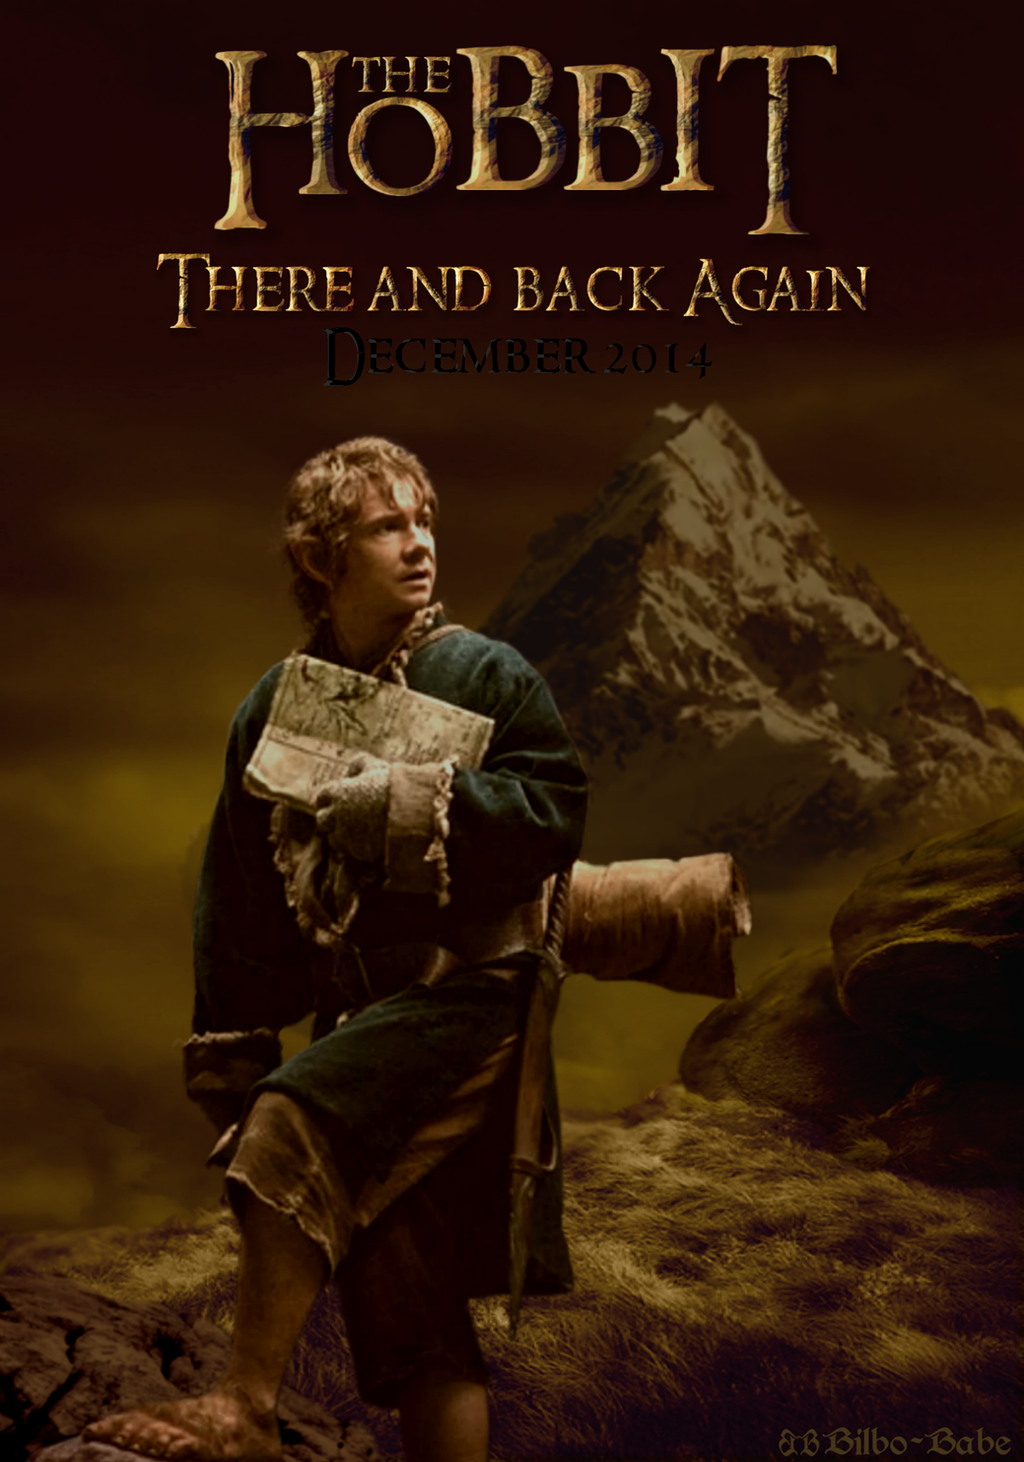 there and back again an analysis of the hobbit There and back again - a hobbit's cut | the hobbit in 3 hours global rank 4 707 899  traffic analysis compare it to.